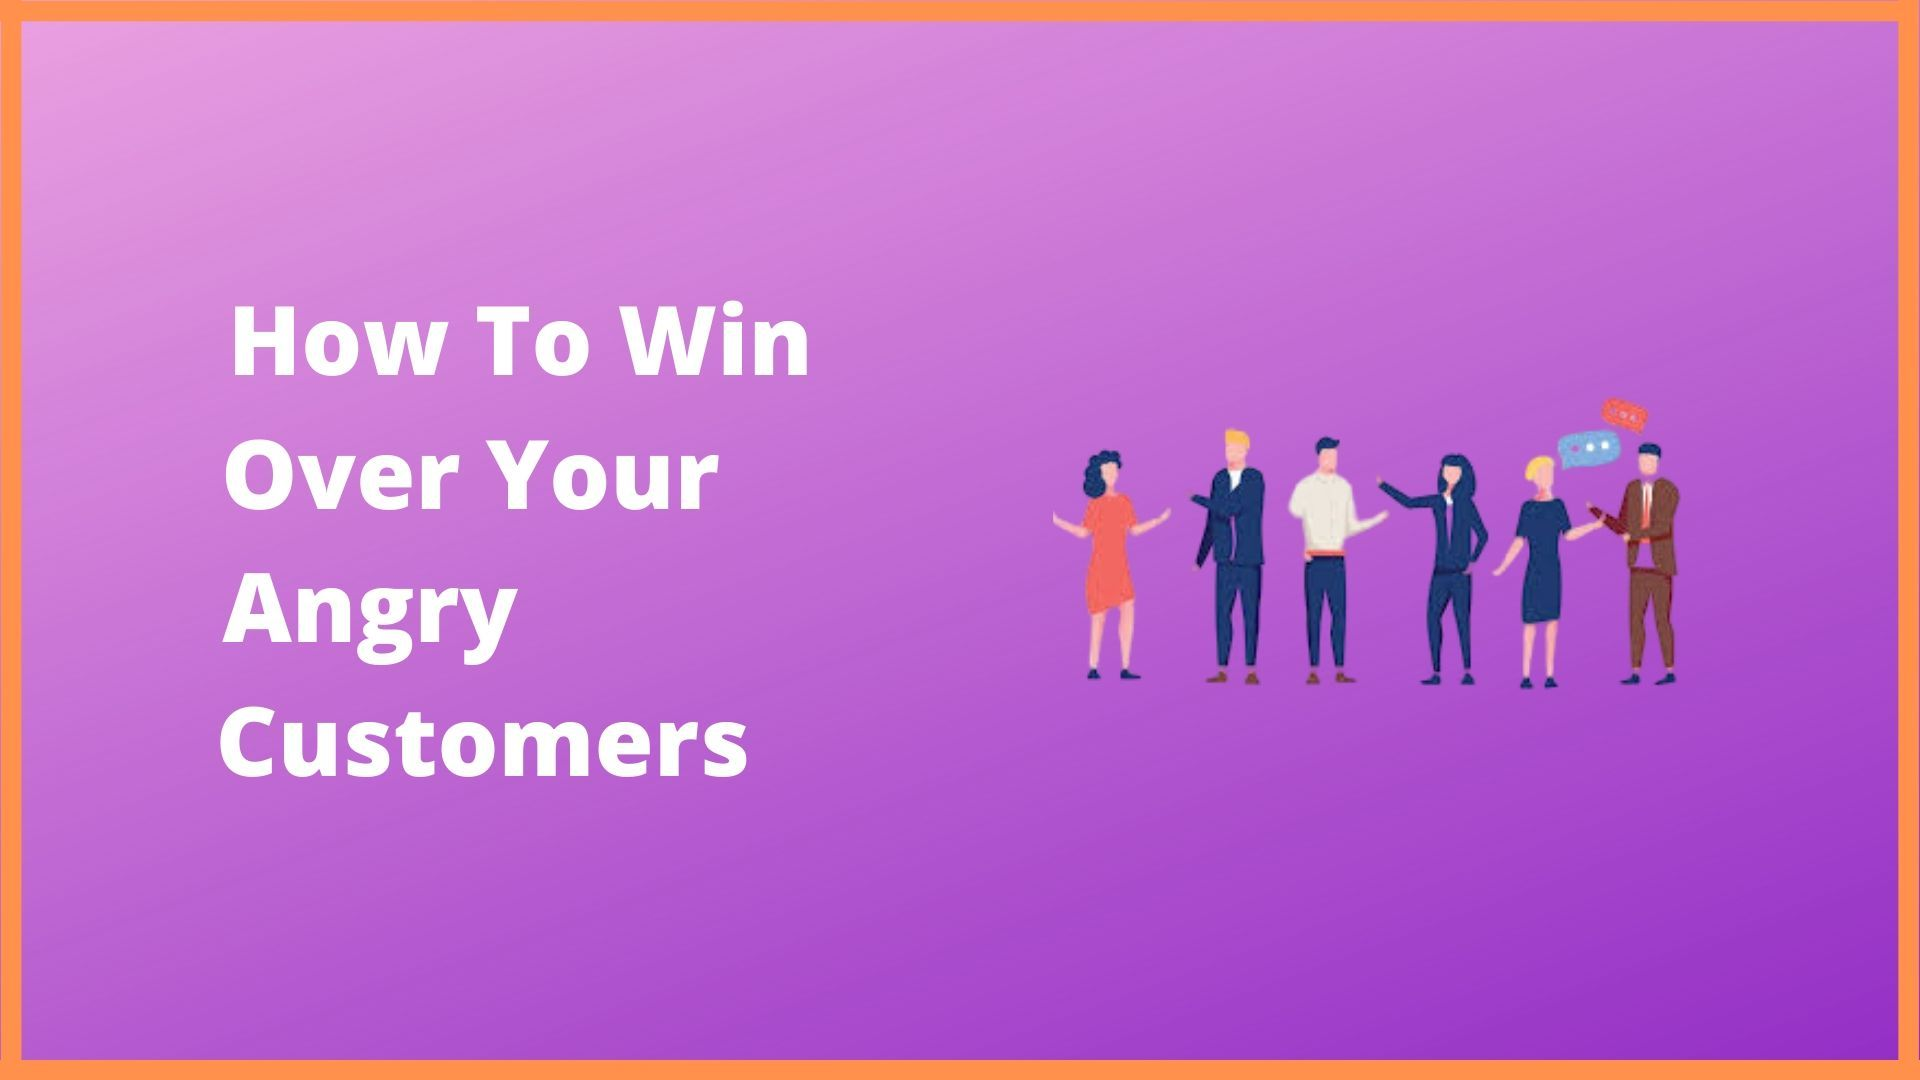 Here Are The Best Ways To Deal With Your Angry Customers